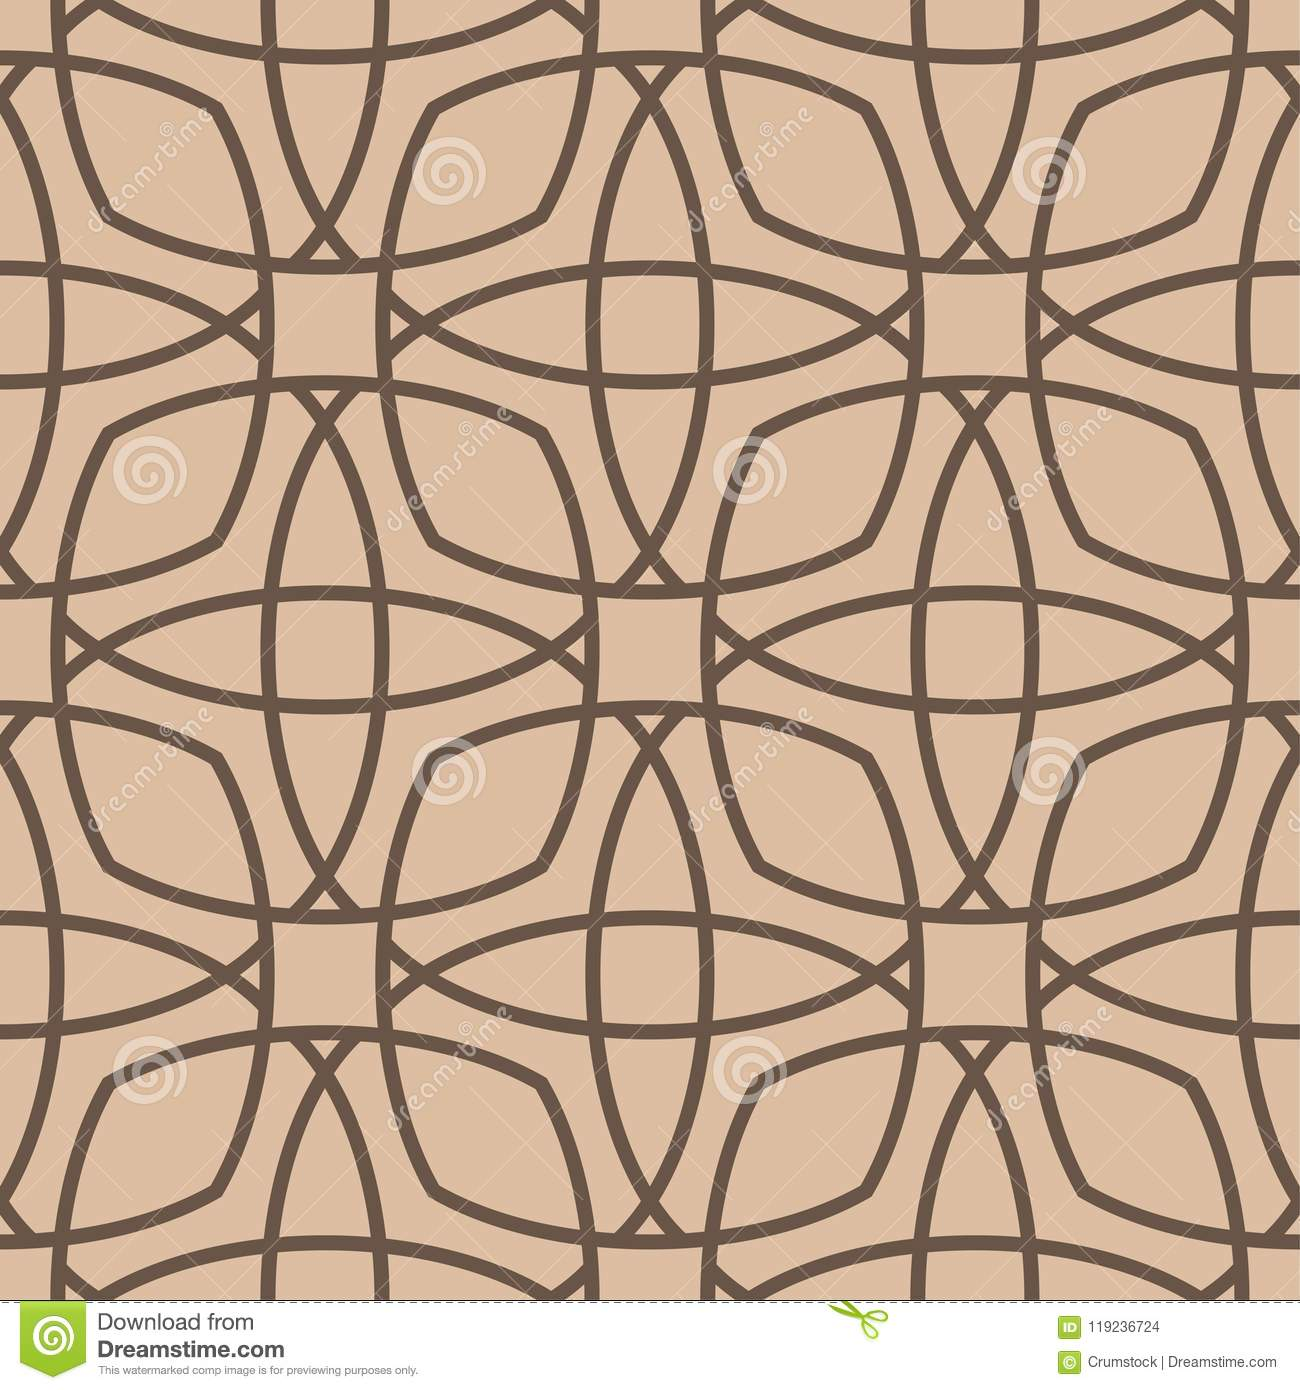 Geometric ornament. Beige and brown seamless pattern